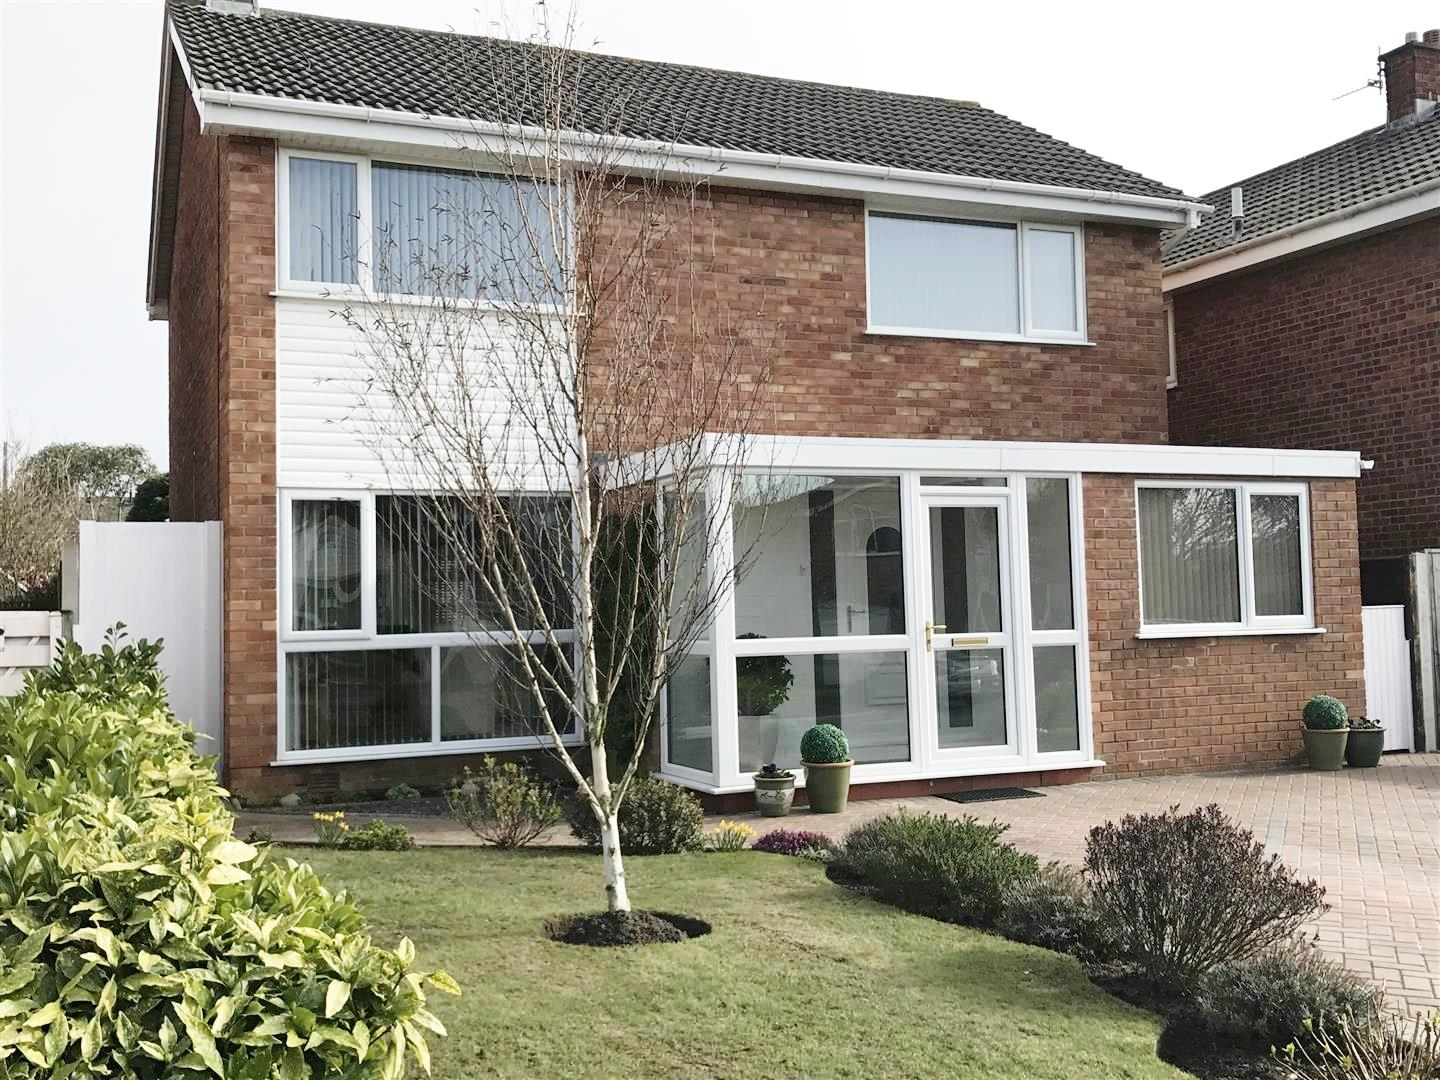 4 Bedrooms Property for sale in Larchwood Close, Lytham